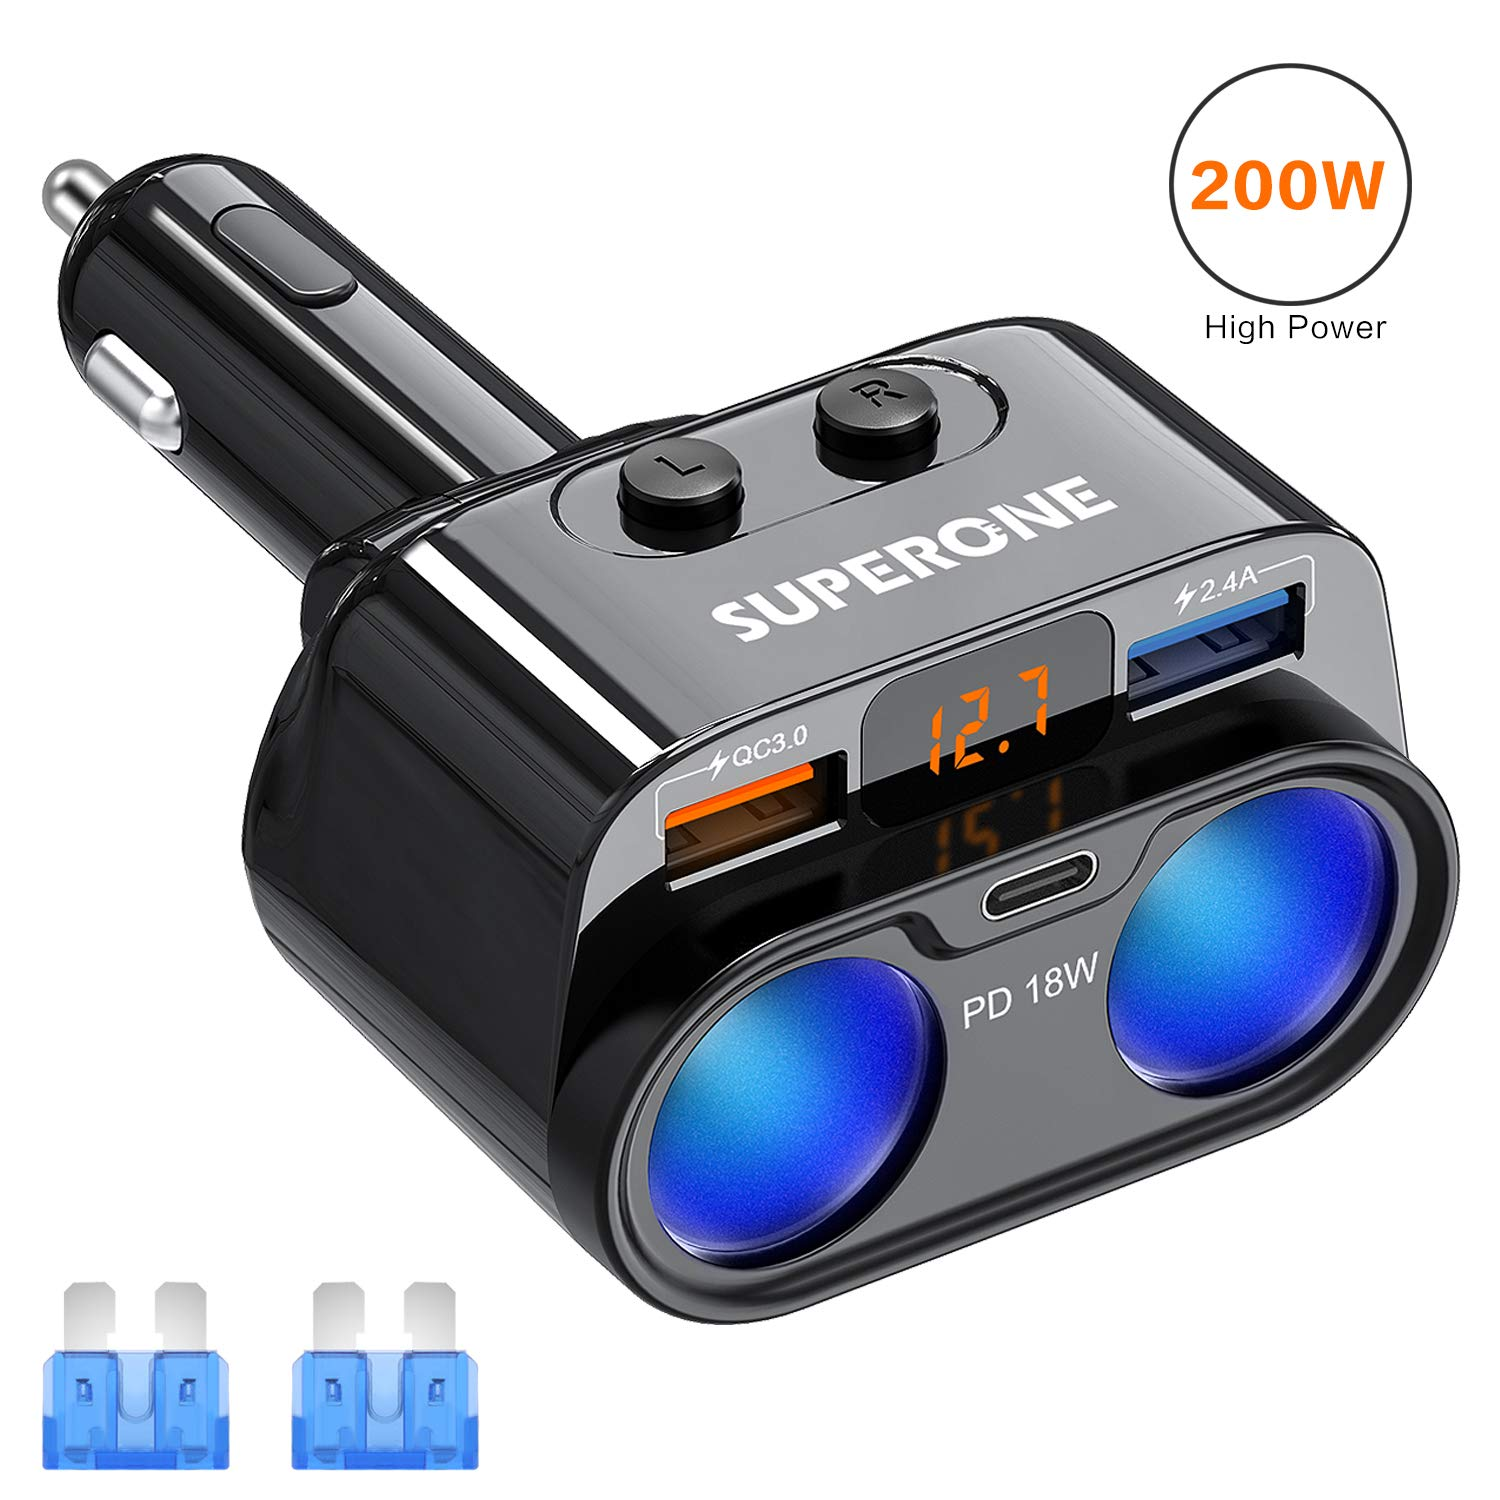 SUPERONE 200W 2-Socket Cigarette Lighter Splitter Power Adapter, USB C Car Charger with 18W Power Delivery 3.0 & Quick Charge 3.0 for iPhone 11/11 Pro/X/8/7/6, Samsung, Google Pixel and More by SUPERONE